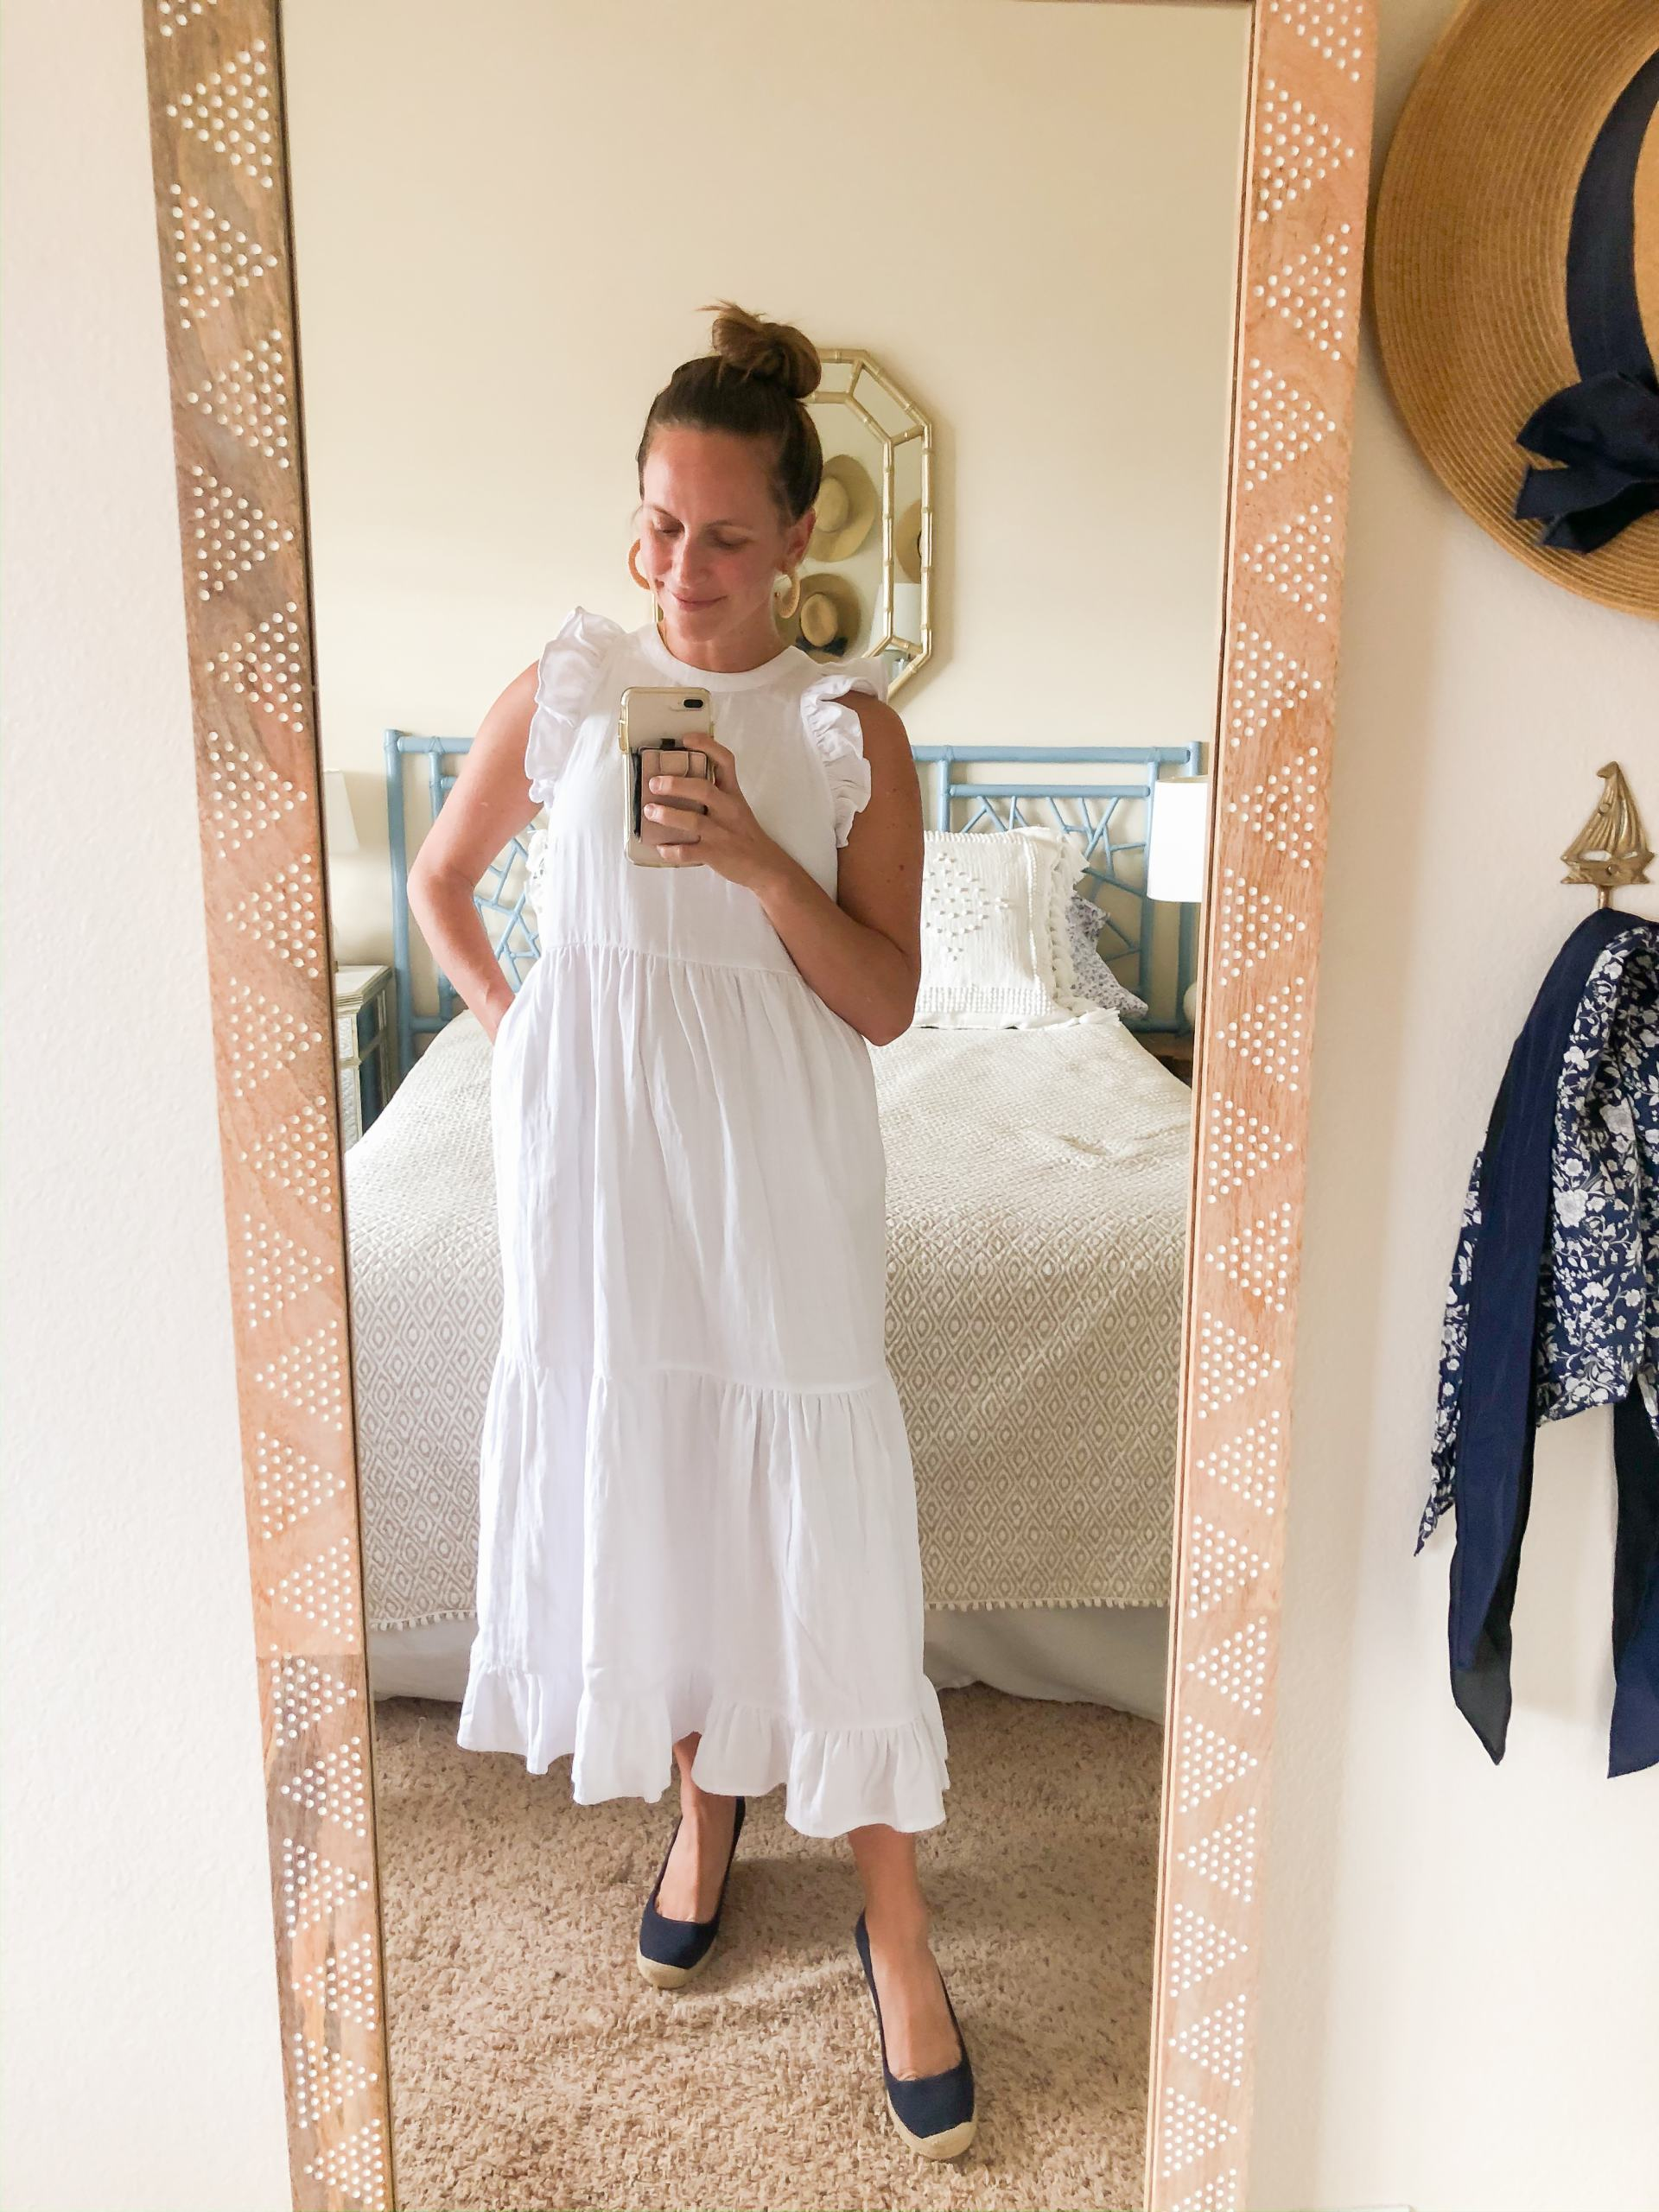 white maxi dress - white tiered maxi dress - white midi dress - affordable white dress - white dress with ruffles - target white dress - spring fashion - espadrille wedges - jcrew factory espadrilles - white dress with pockets